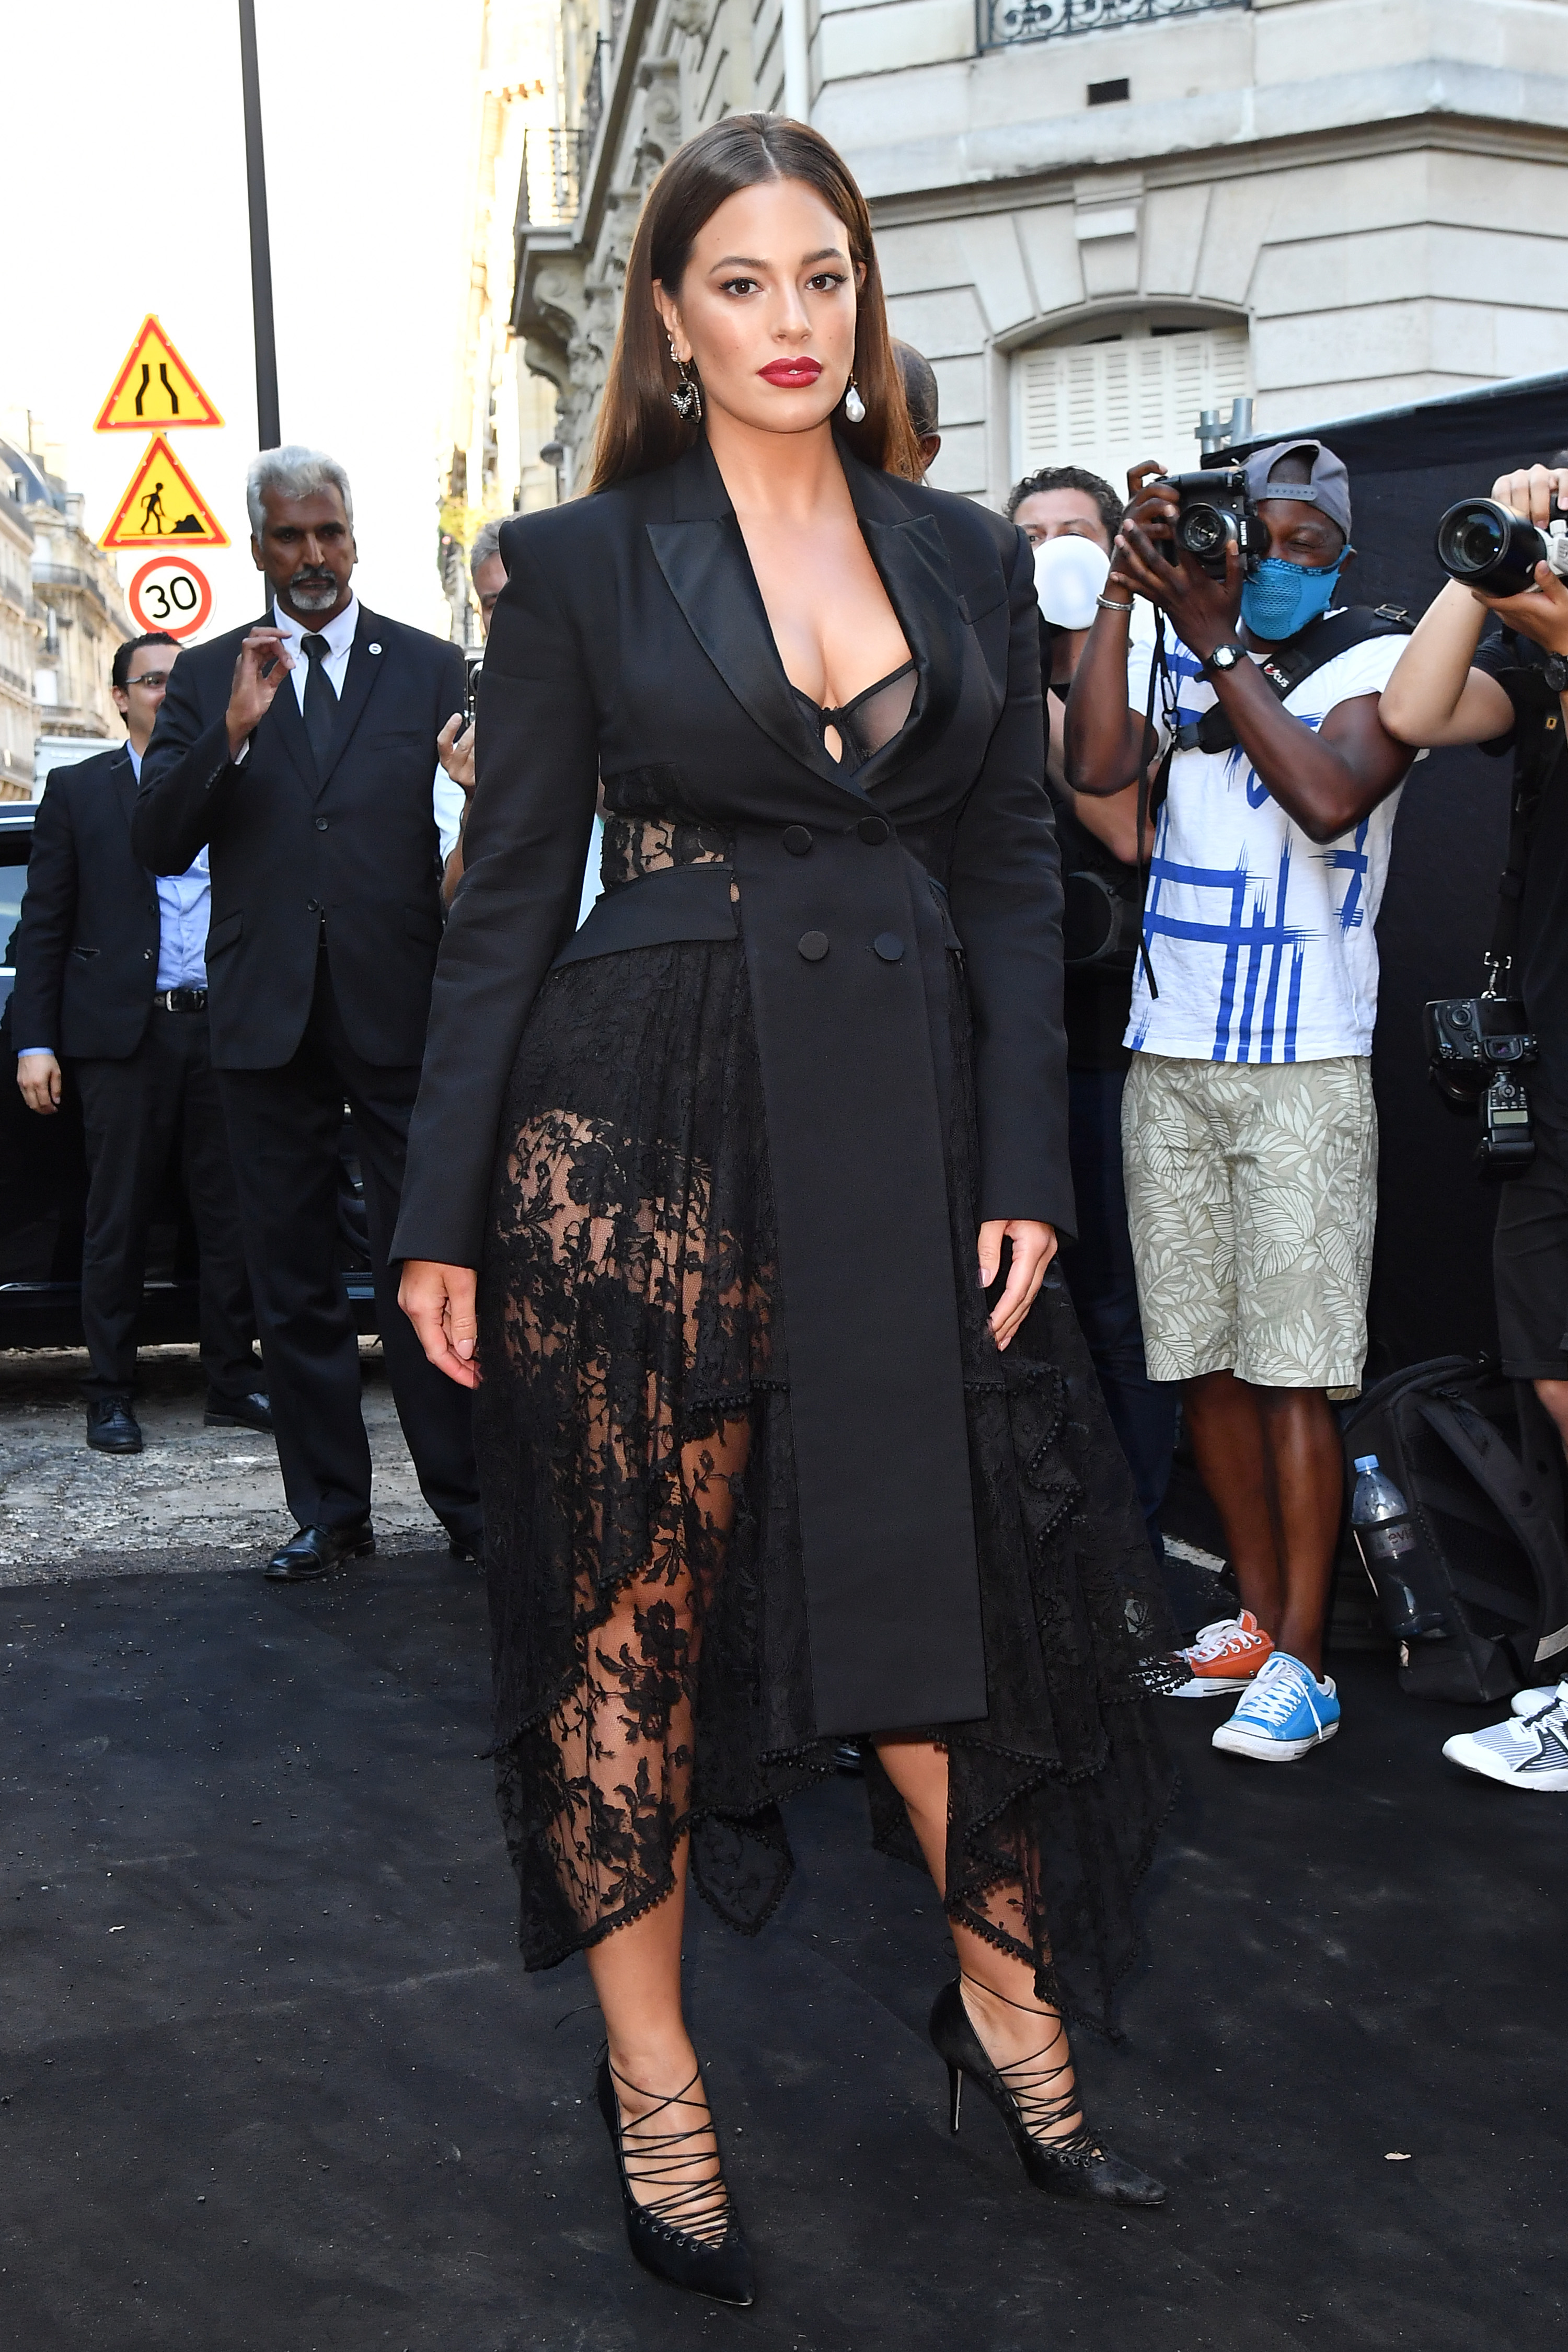 """No further evidence is required that lace is back in a big way than Ashley Graham steaming up the sidewalks of Paris on Wednesday.<br /> <br /> <a href=""""https://style.nine.com.au/2018/01/25/09/28/ashley-graham-revlon-beauty-campaign-plus-size"""" target=""""_blank"""" title=""""The 30-year-old supermodel"""">The 30-year-old supermodel</a> attended a gala hosted by <em>Vogue Paris,</em> where her sheer lace ensemble from Alexander McQueen stole second glances as she joined other high-profile attendees such as Naomi Campbell, Emily Ratajkowski, Kaia Gerber and Virgil Abloh at the Palais Galliera.<br /> <br /> Considering lace's connotations with romance and allure, it's not surprising Graham, <a href=""""https://style.nine.com.au/ashley-graham/3"""" target=""""_blank"""">the first plus-size model to pose for the cover of <em>Sports Illustra</em>ted</a>, has made it a fixture in her wardrobe.<br /> <br /> """"I know my curves are sexy and I want everyone else to know that theirs are too,"""" Graham told<em><a href=""""https://www.usmagazine.com/stylish/news/sports-illustrated-plus-size-model-ashley-graham-2015-swimsuit-issue-201542/"""" target=""""_blank"""" title="""" US Magazine.""""> US Magazine.</a></em><br /> <br /> """"There is no reason to hide and every reason to flaunt.""""<br /> <br /> Lace slipped from the spotlight in recent decades, derided as 'dowdy', but Graham and <a href=""""https://style.nine.com.au/2017/10/11/13/43/duchess-of-camrbidge-kate-wears-temperley-lace-dress-buy-shop-ootd"""" target=""""_blank"""" title=""""the Duchess of Cambridge"""">the Duchess of Cambridge</a> are part of a new breed of style icons bringing it back into the spotlight.<br /> <br /> With winter in full swing, there is no time like the present to add a little lace to your cool weather attire.<br /> <br /> For the beginners, consider adding a bralette or slip underneath your winter coat, or for the bold and daring, go full-length in a gown or matching co-ords.<br /> <br /> Click through to find a piece that is right for you.<br /> <br />"""